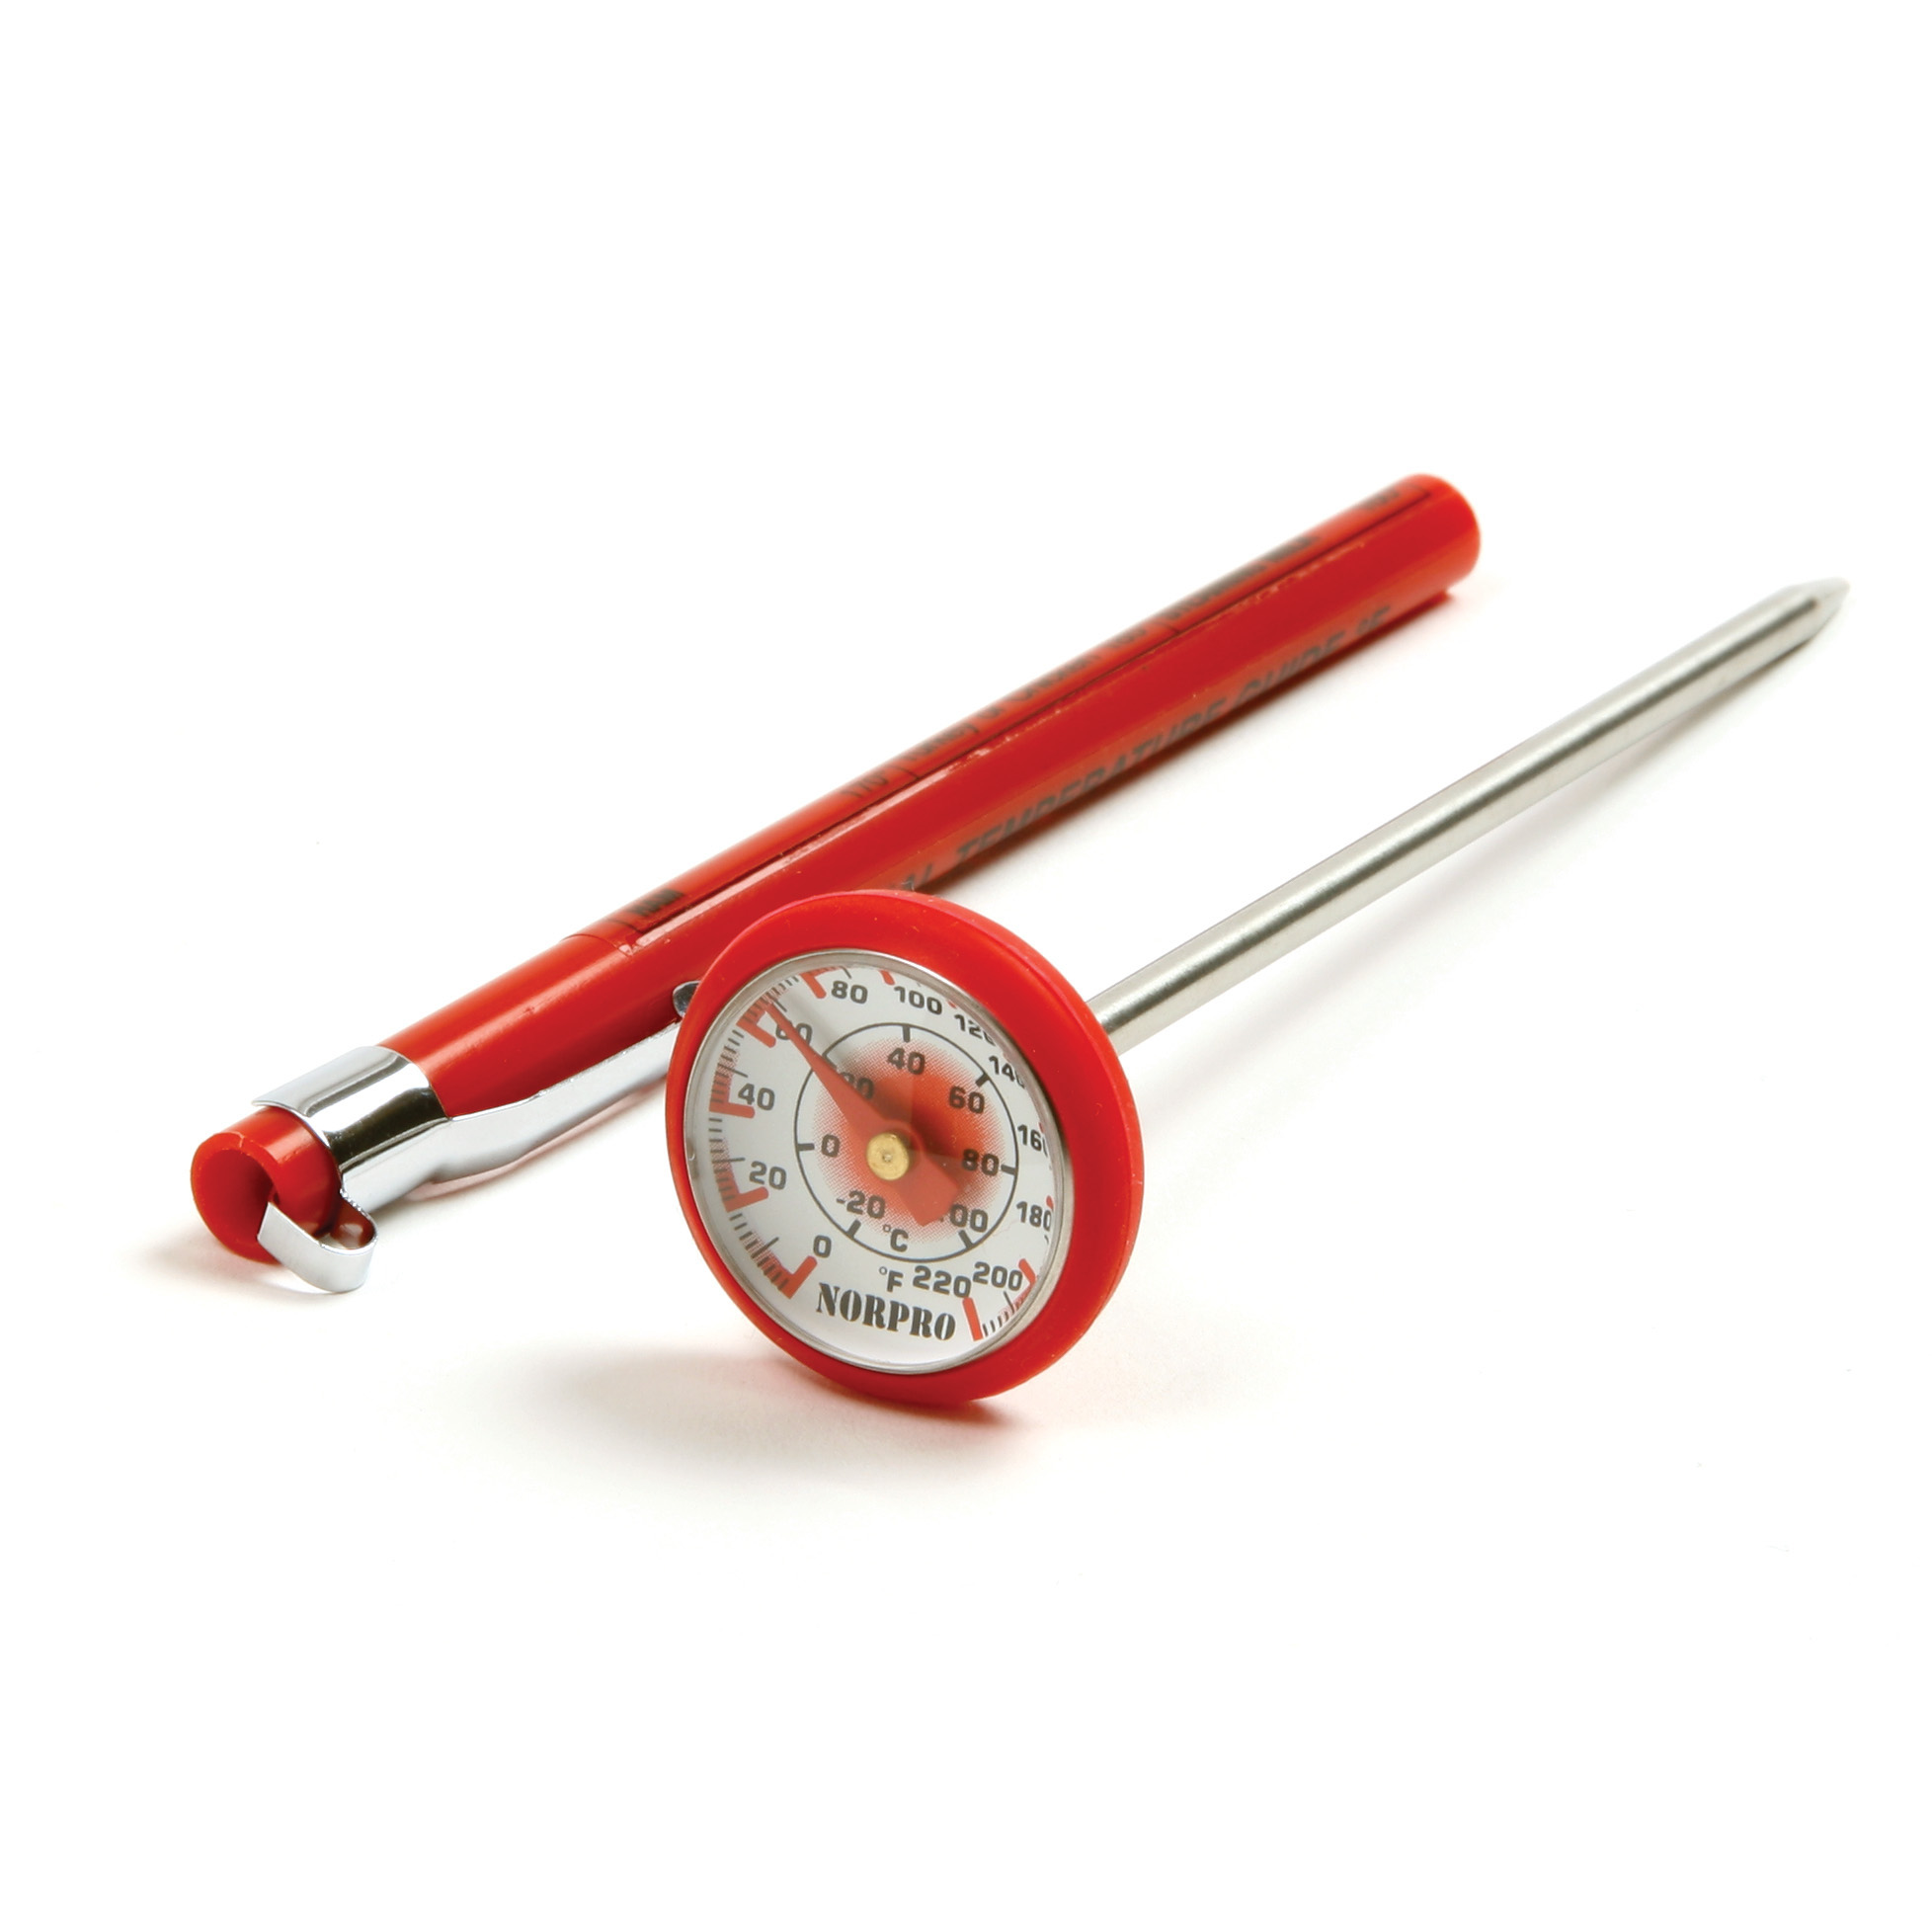 Norpro Red Silicone Instant Read Thermometer